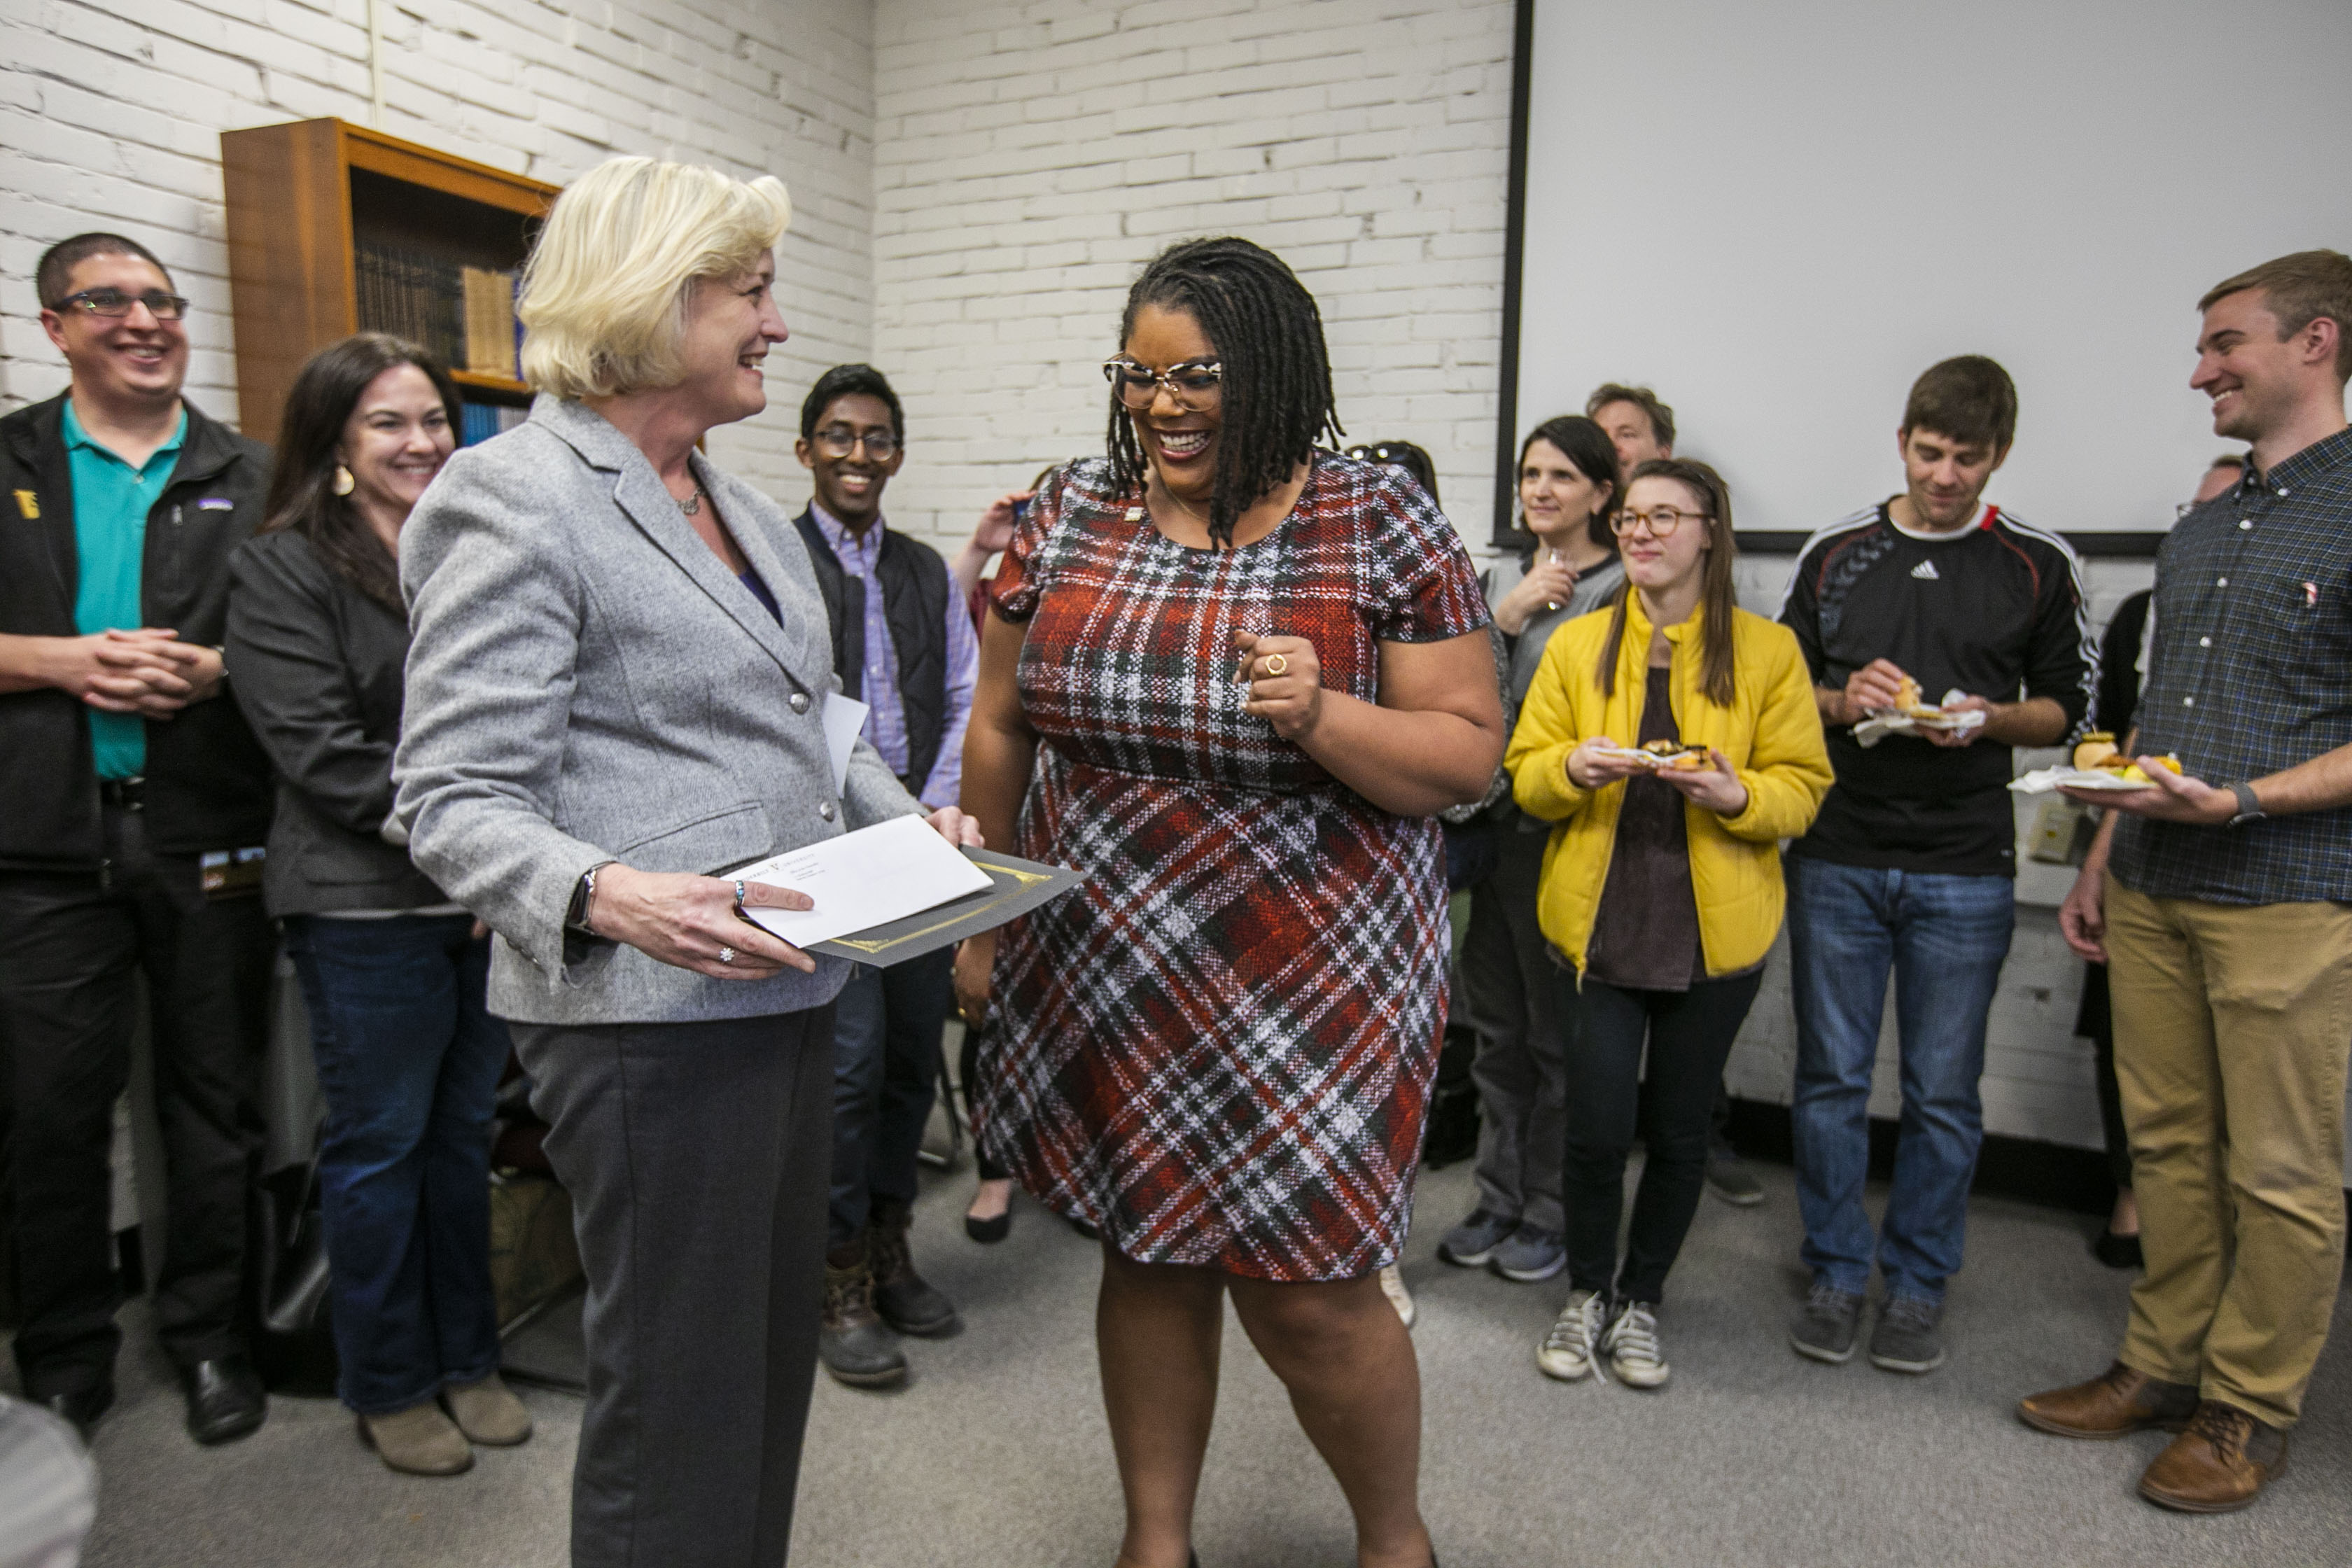 Interim Chancellor and Provost Susan R. Wente presents the Heart and Soul Staff Appreciation Award to Educational Coordinator Ally Armstead. (Anne Rayner/Vanderbilt)